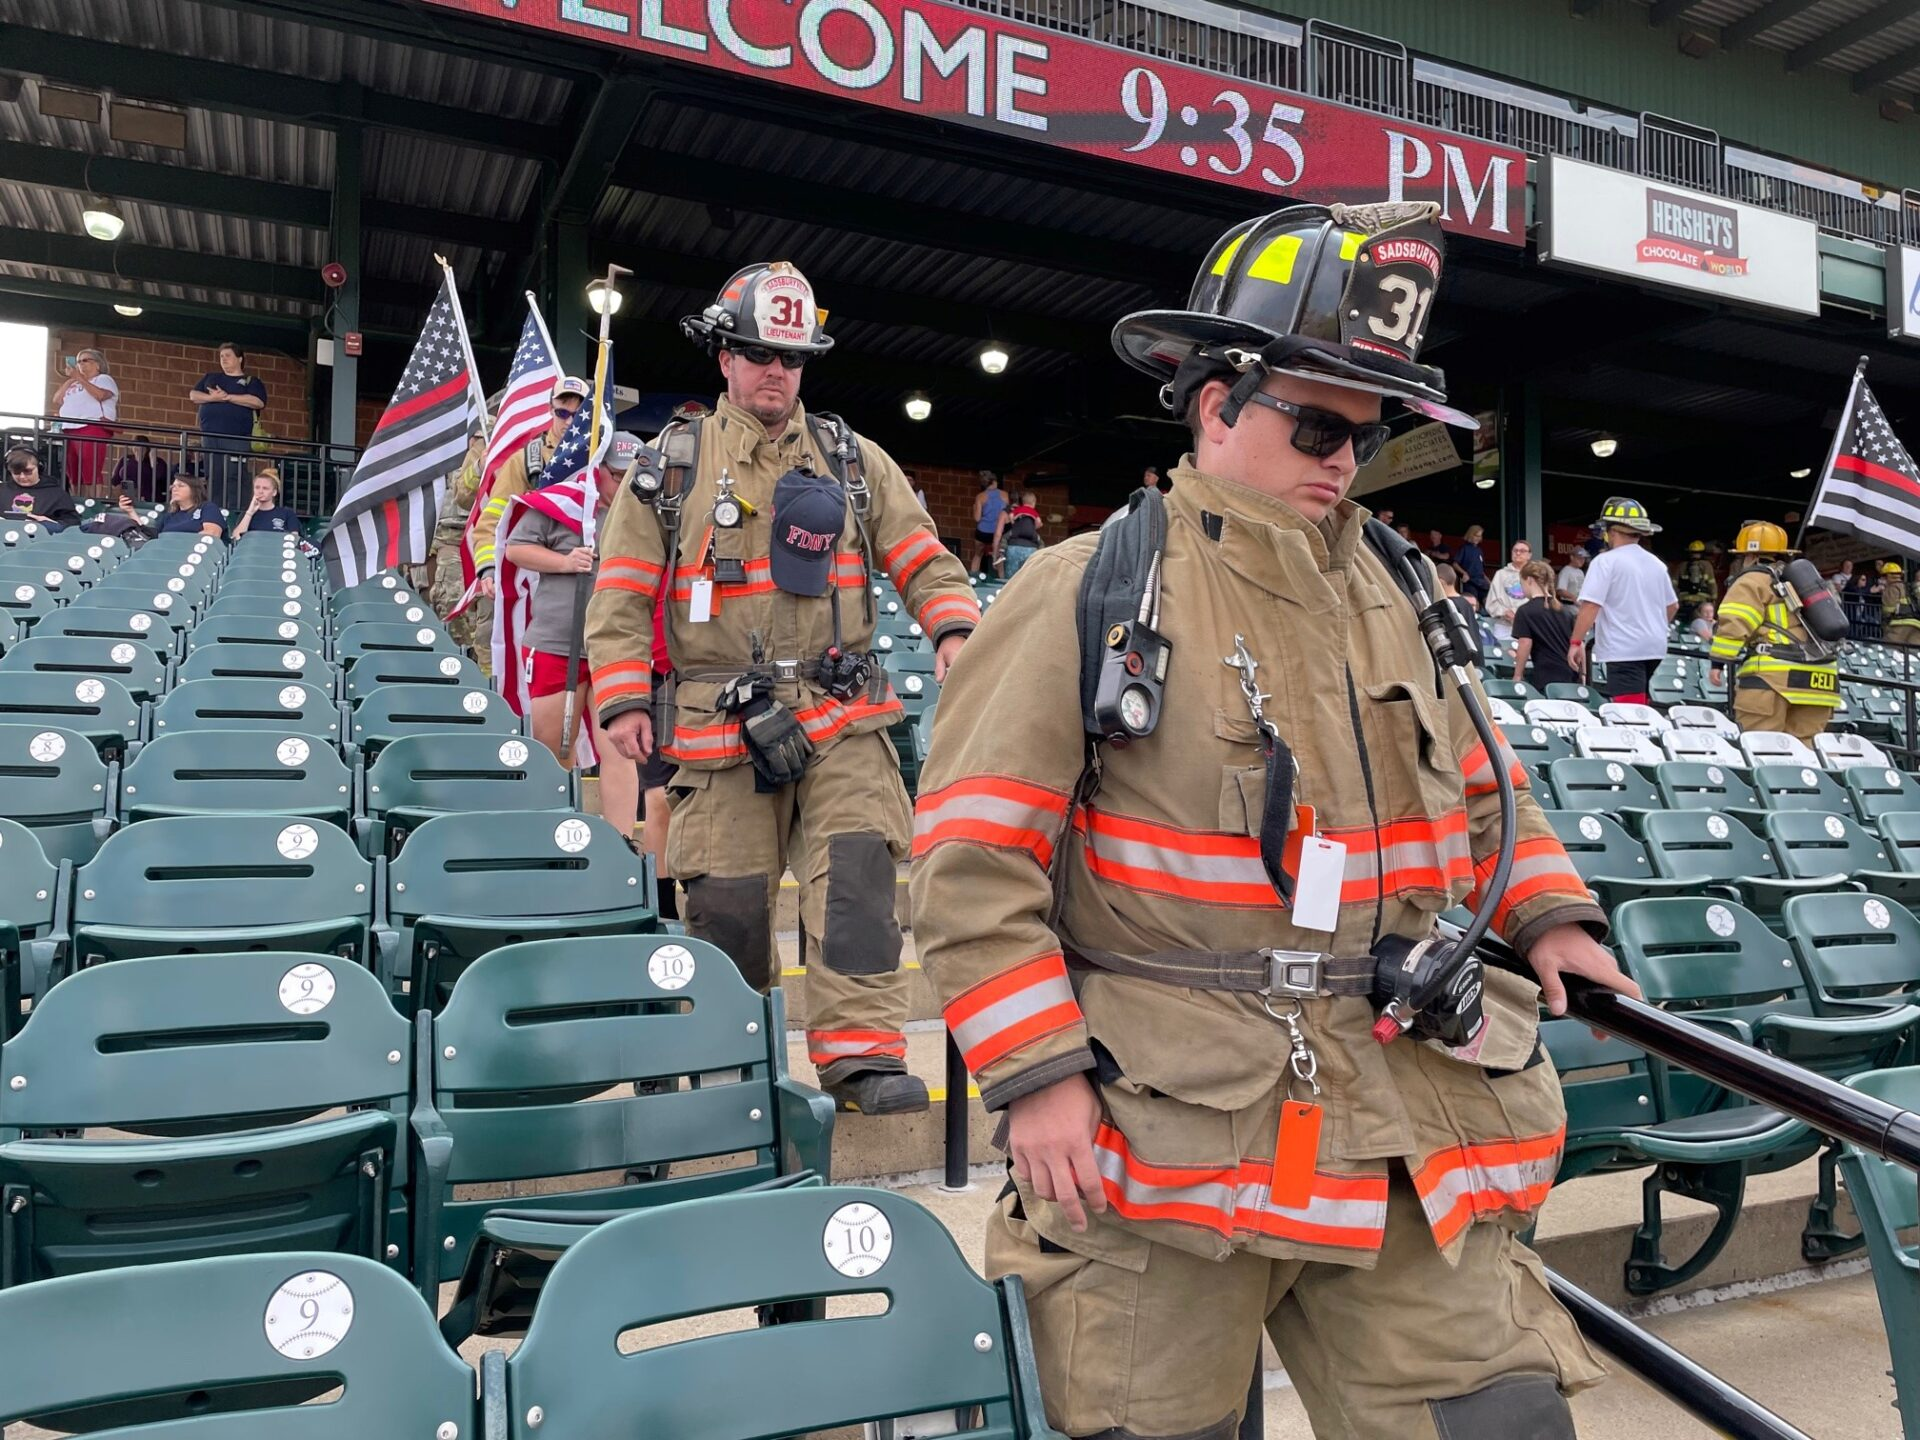 Firefighters take part in the 9/11 Stair Climb at Clipper Magazine Stadium on Sunday, Sept. 12, 2021. (Photo: Kyle Gamble)